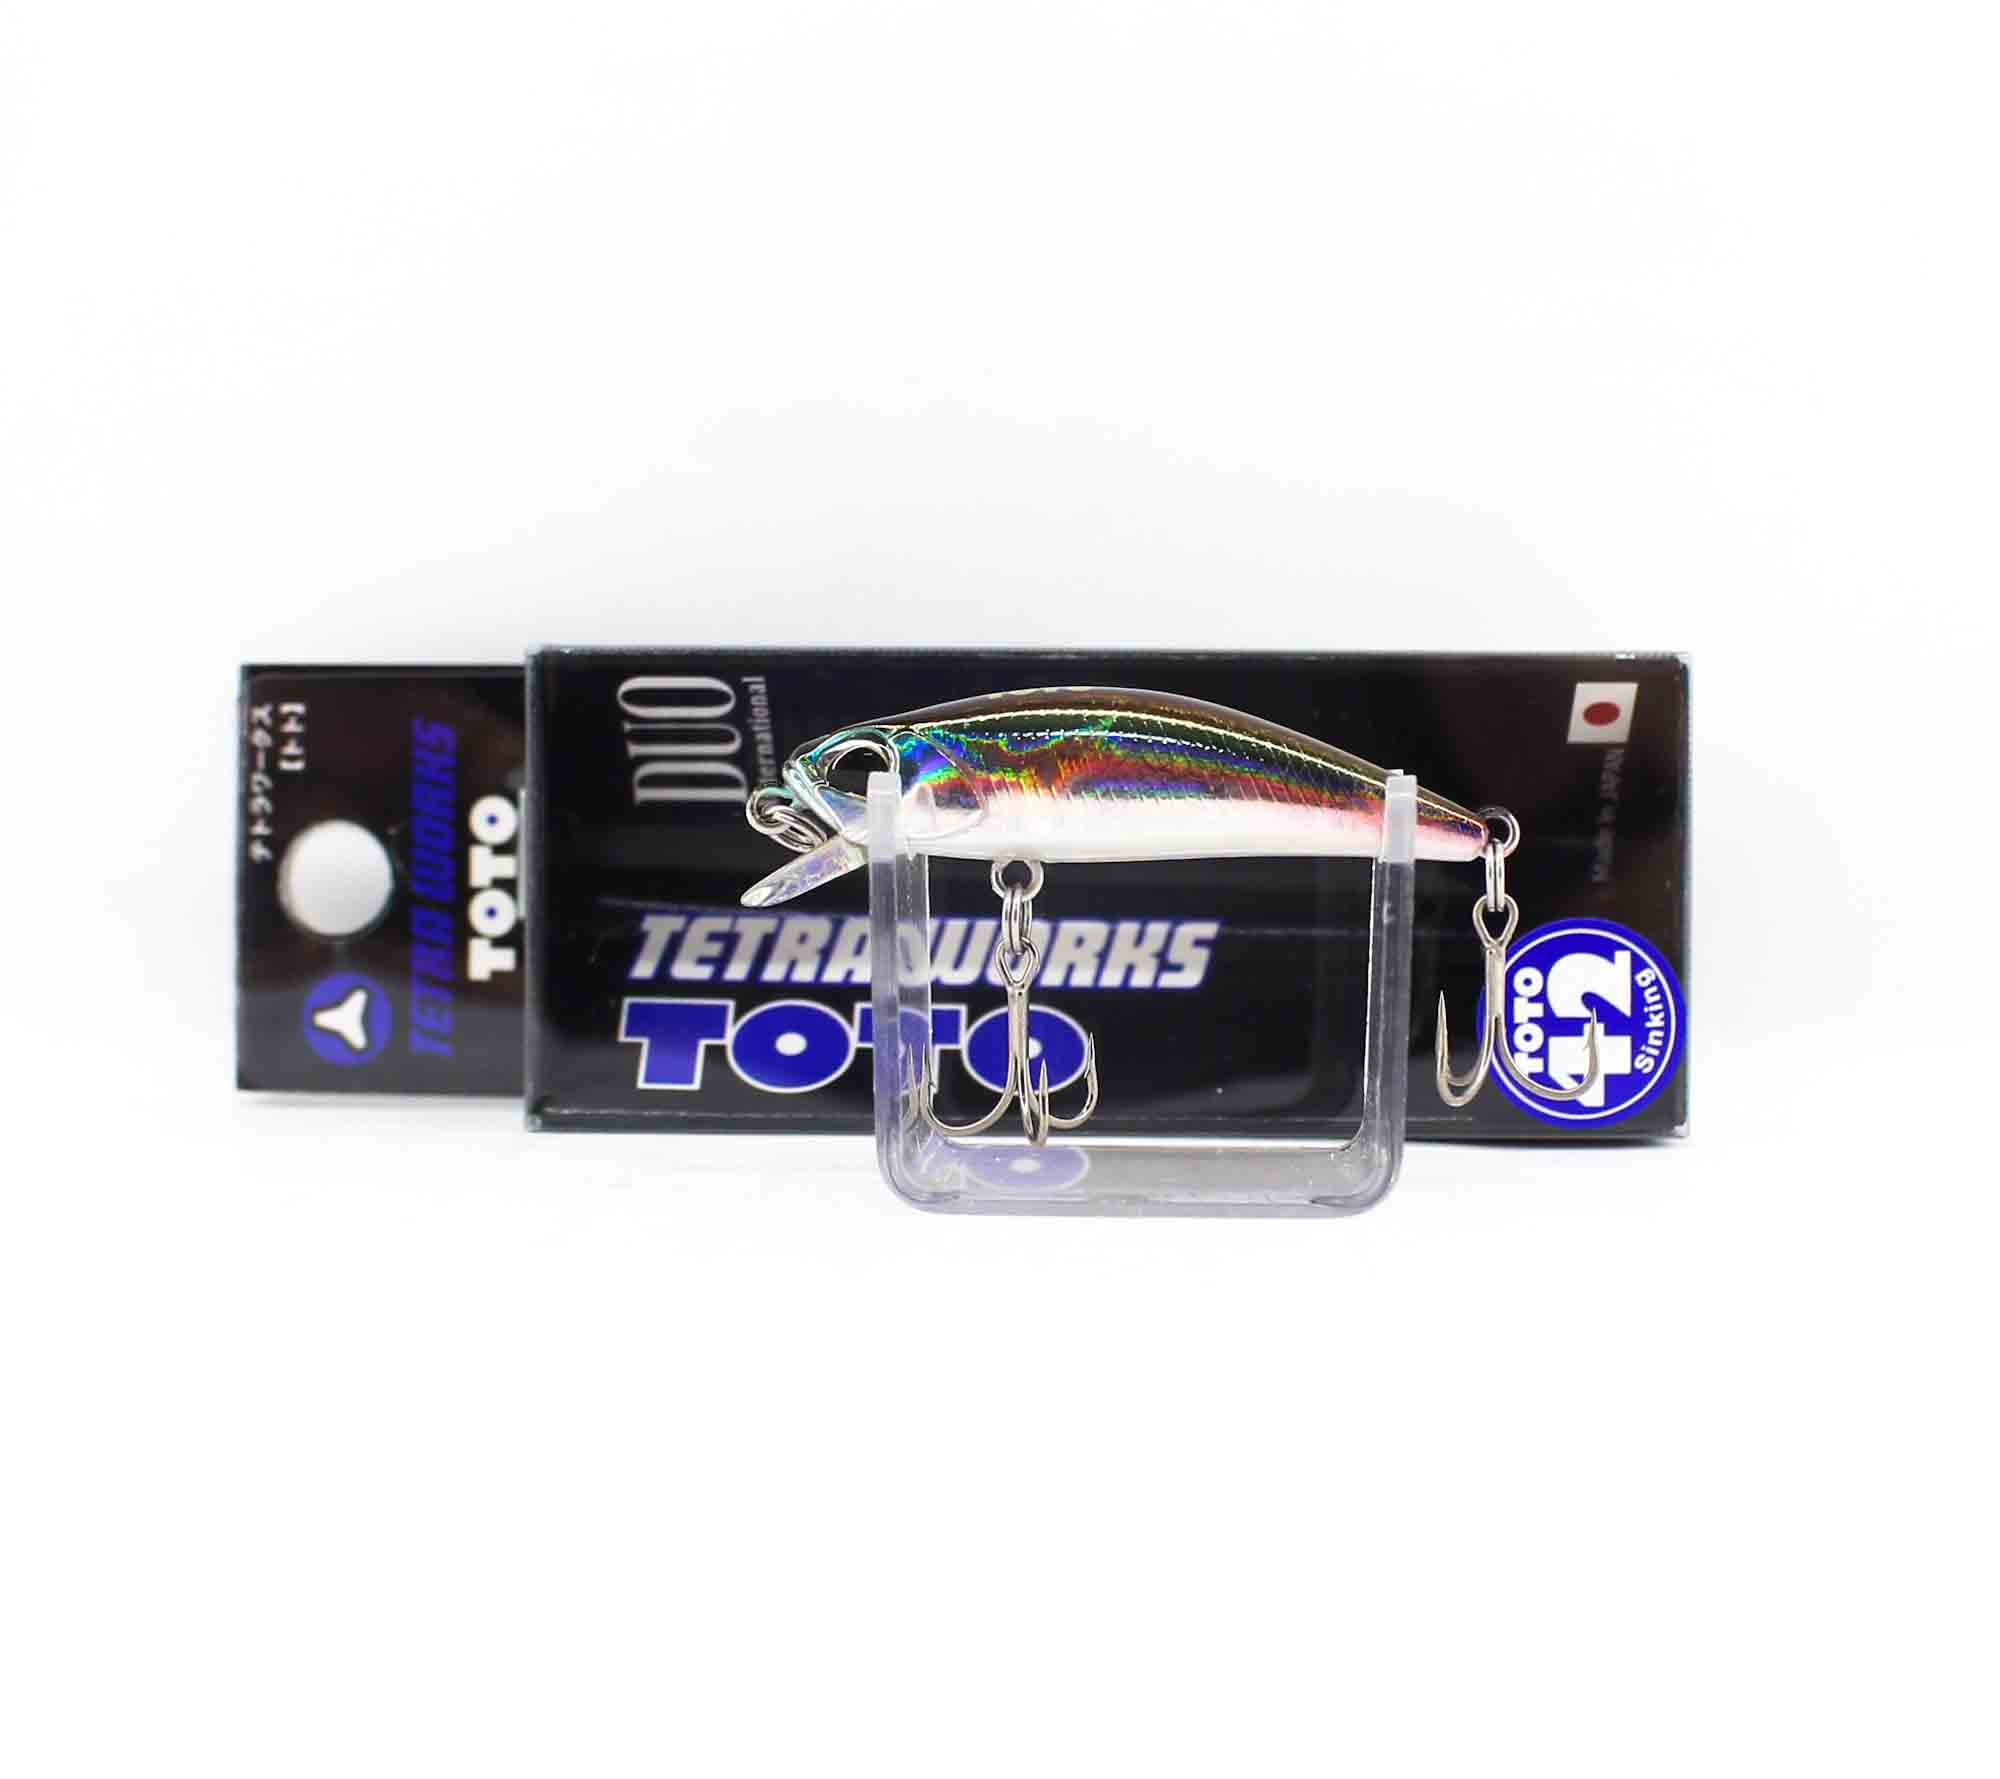 Duo Tetra Works Toto 42 mm Sinking Lure ADA0213 (5864)